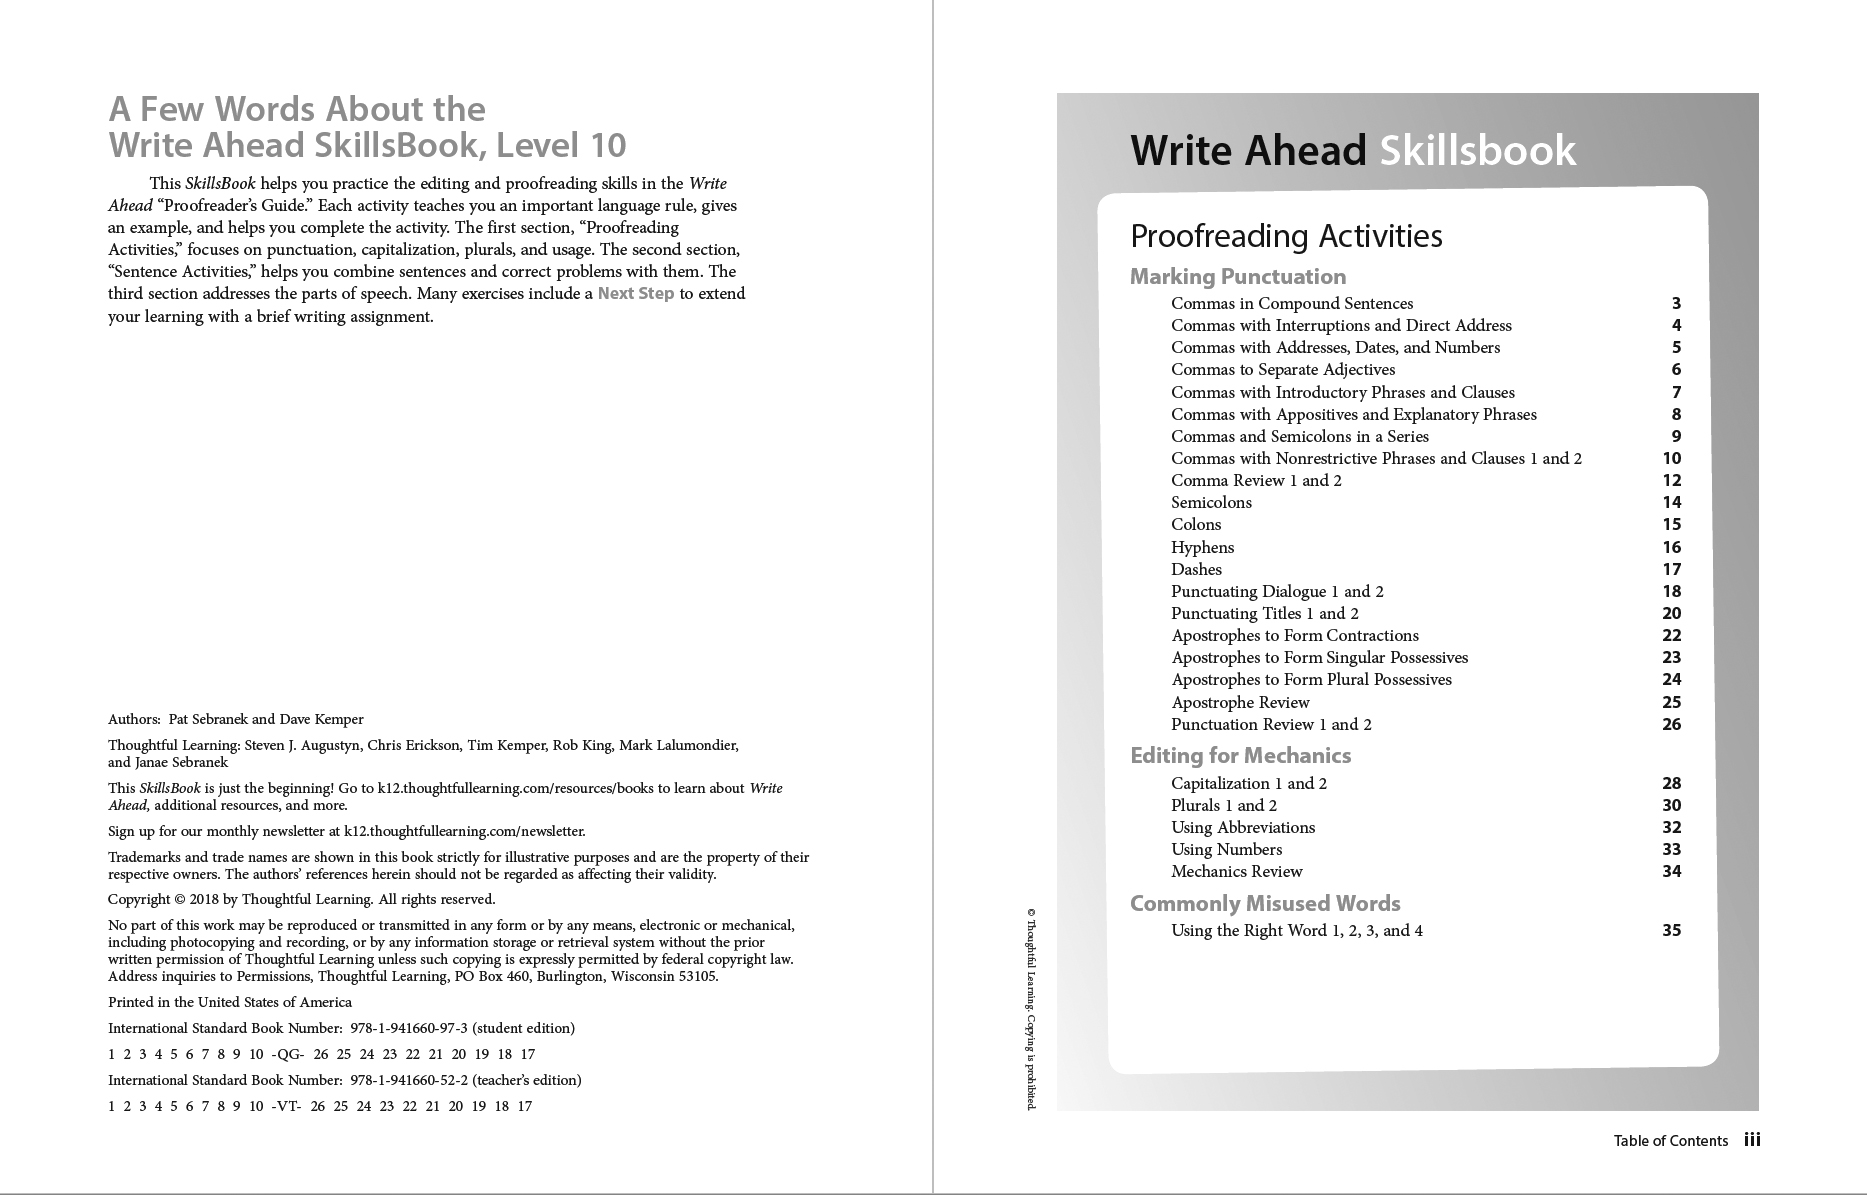 Write Ahead SkillsBook page i